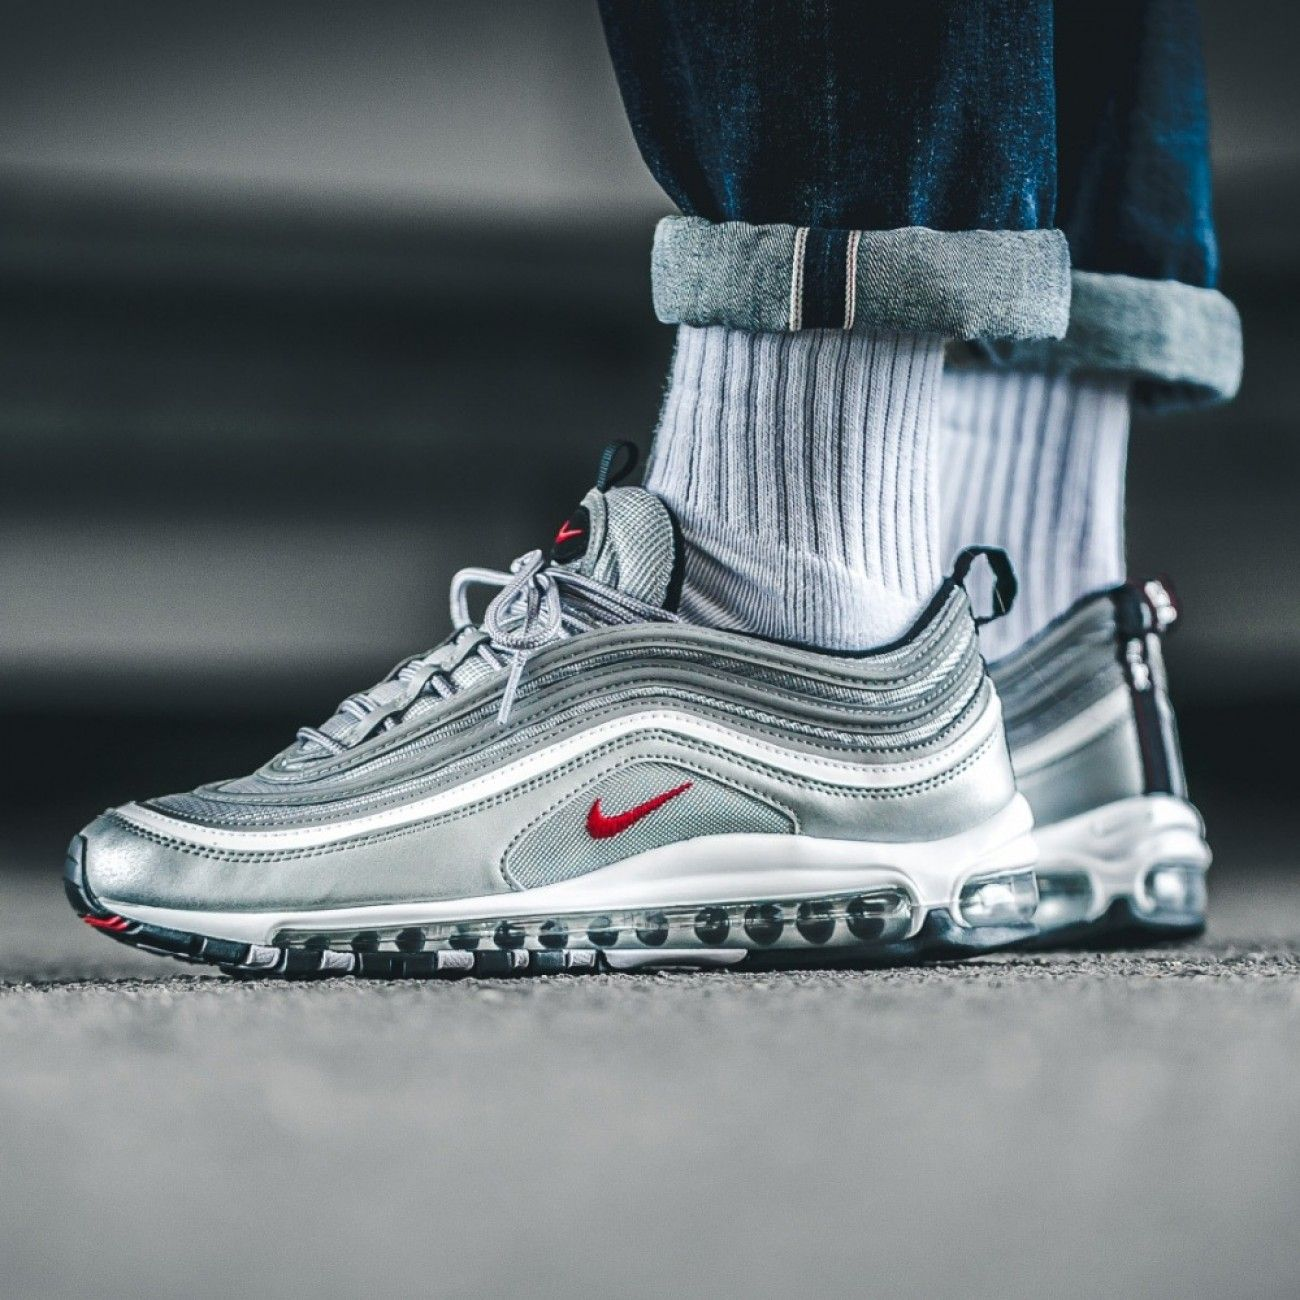 nike air max 97 og qs silver bullet air max 97 silver. Black Bedroom Furniture Sets. Home Design Ideas